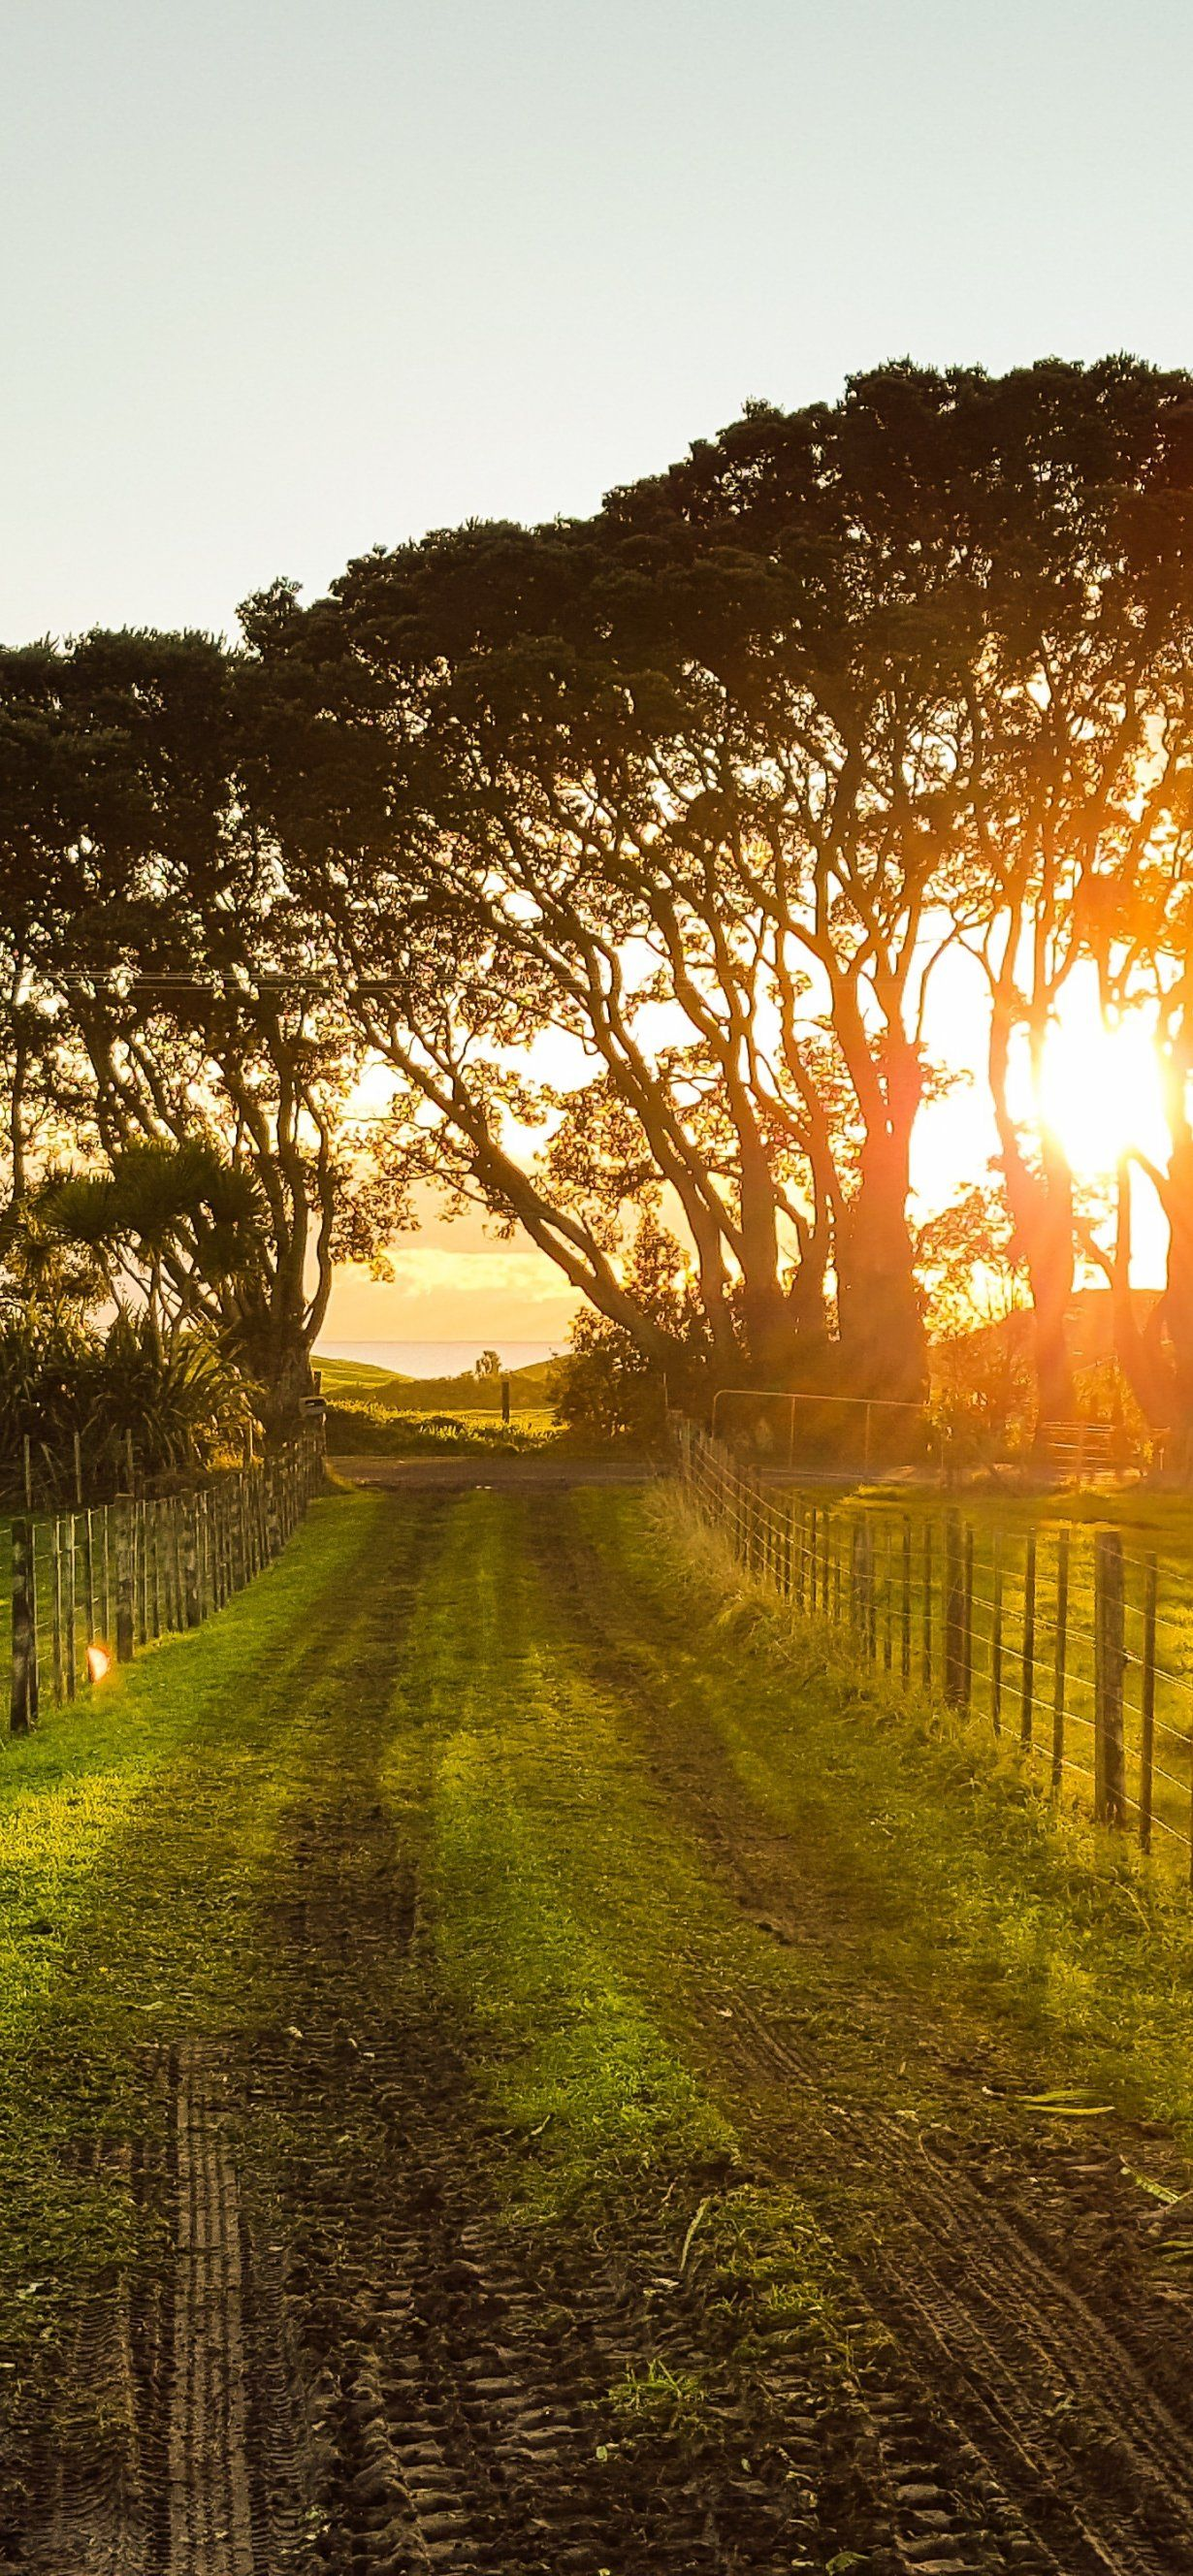 Countryside Sunset Landscape Summer Field Farm Sunlight Outdoor Nature Pictures Sunset Landscape Country Sunset